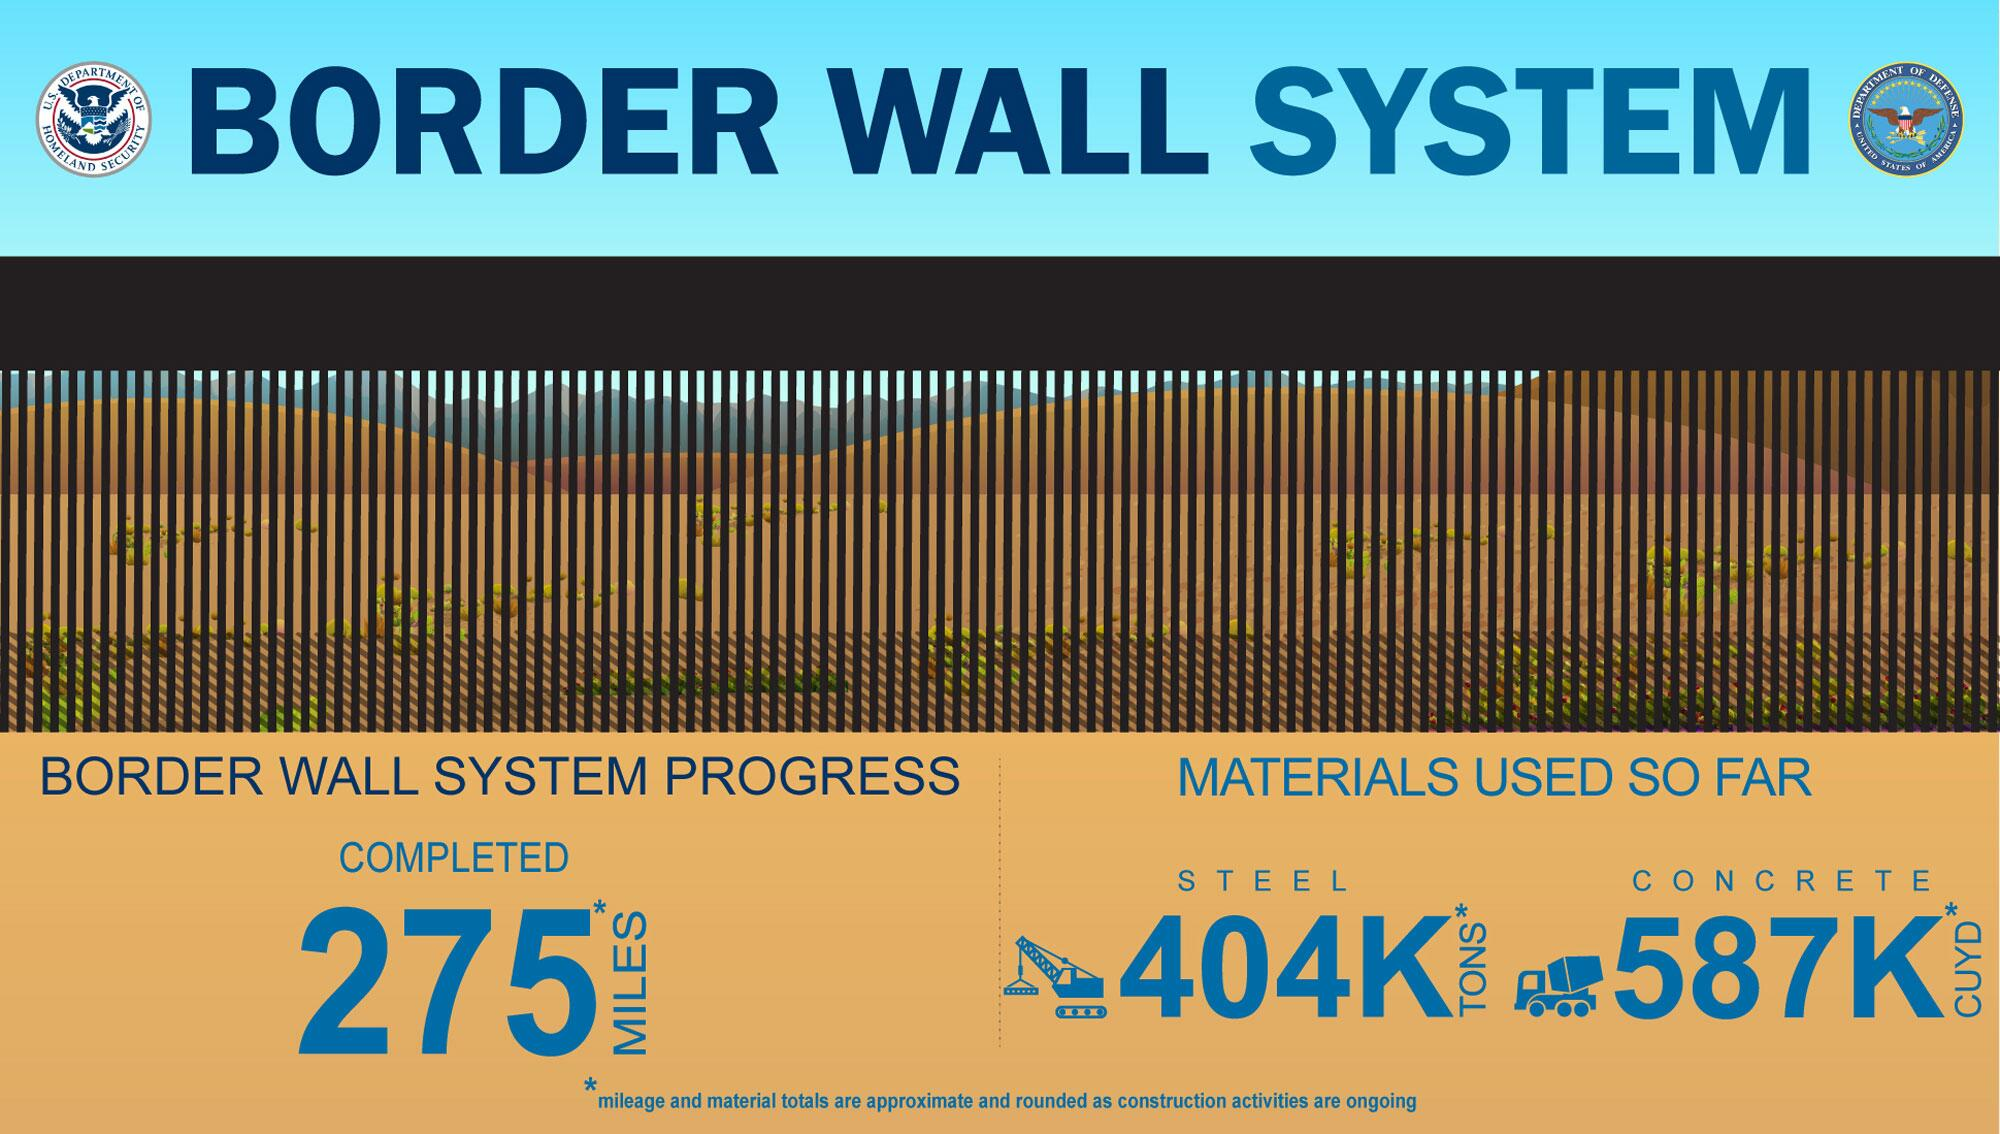 border wall statistics: miles completed 275 miles, materials used: 404,000 tons of steel and 587,000 cubic yards of concrete